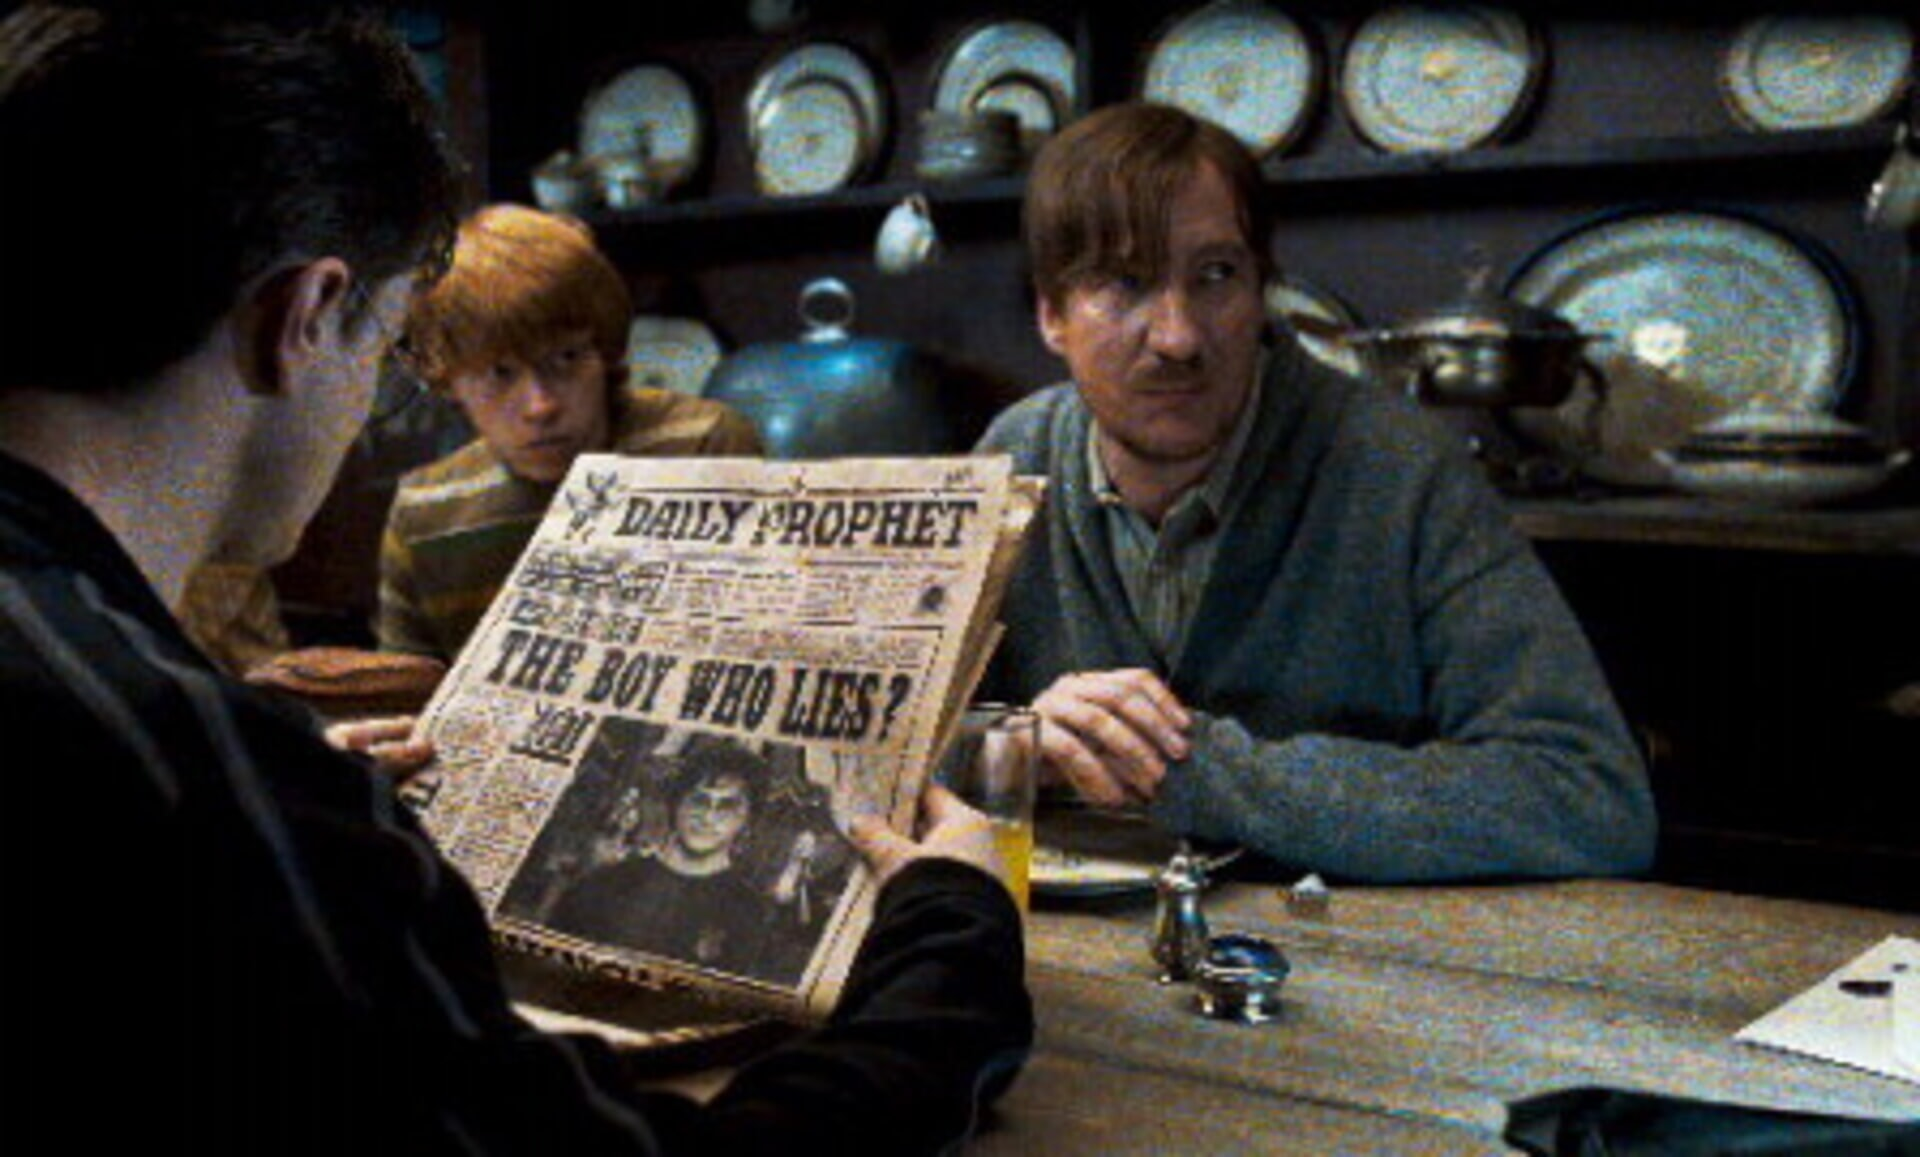 Harry Potter and the Order of the Phoenix - Image 16